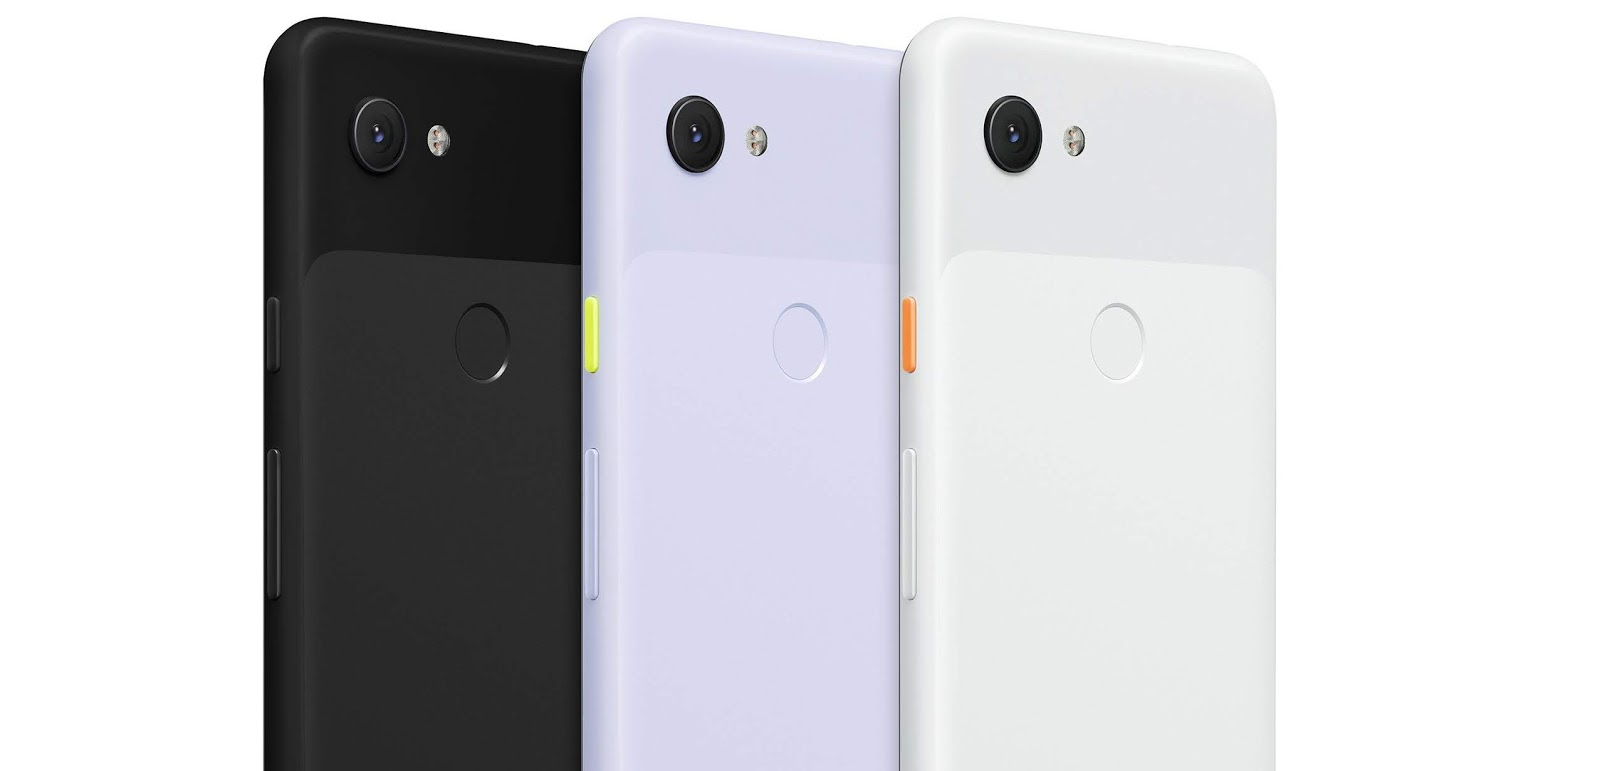 [#I/O19 - Video] Nuovi Google Pixel 3a e 3a XL